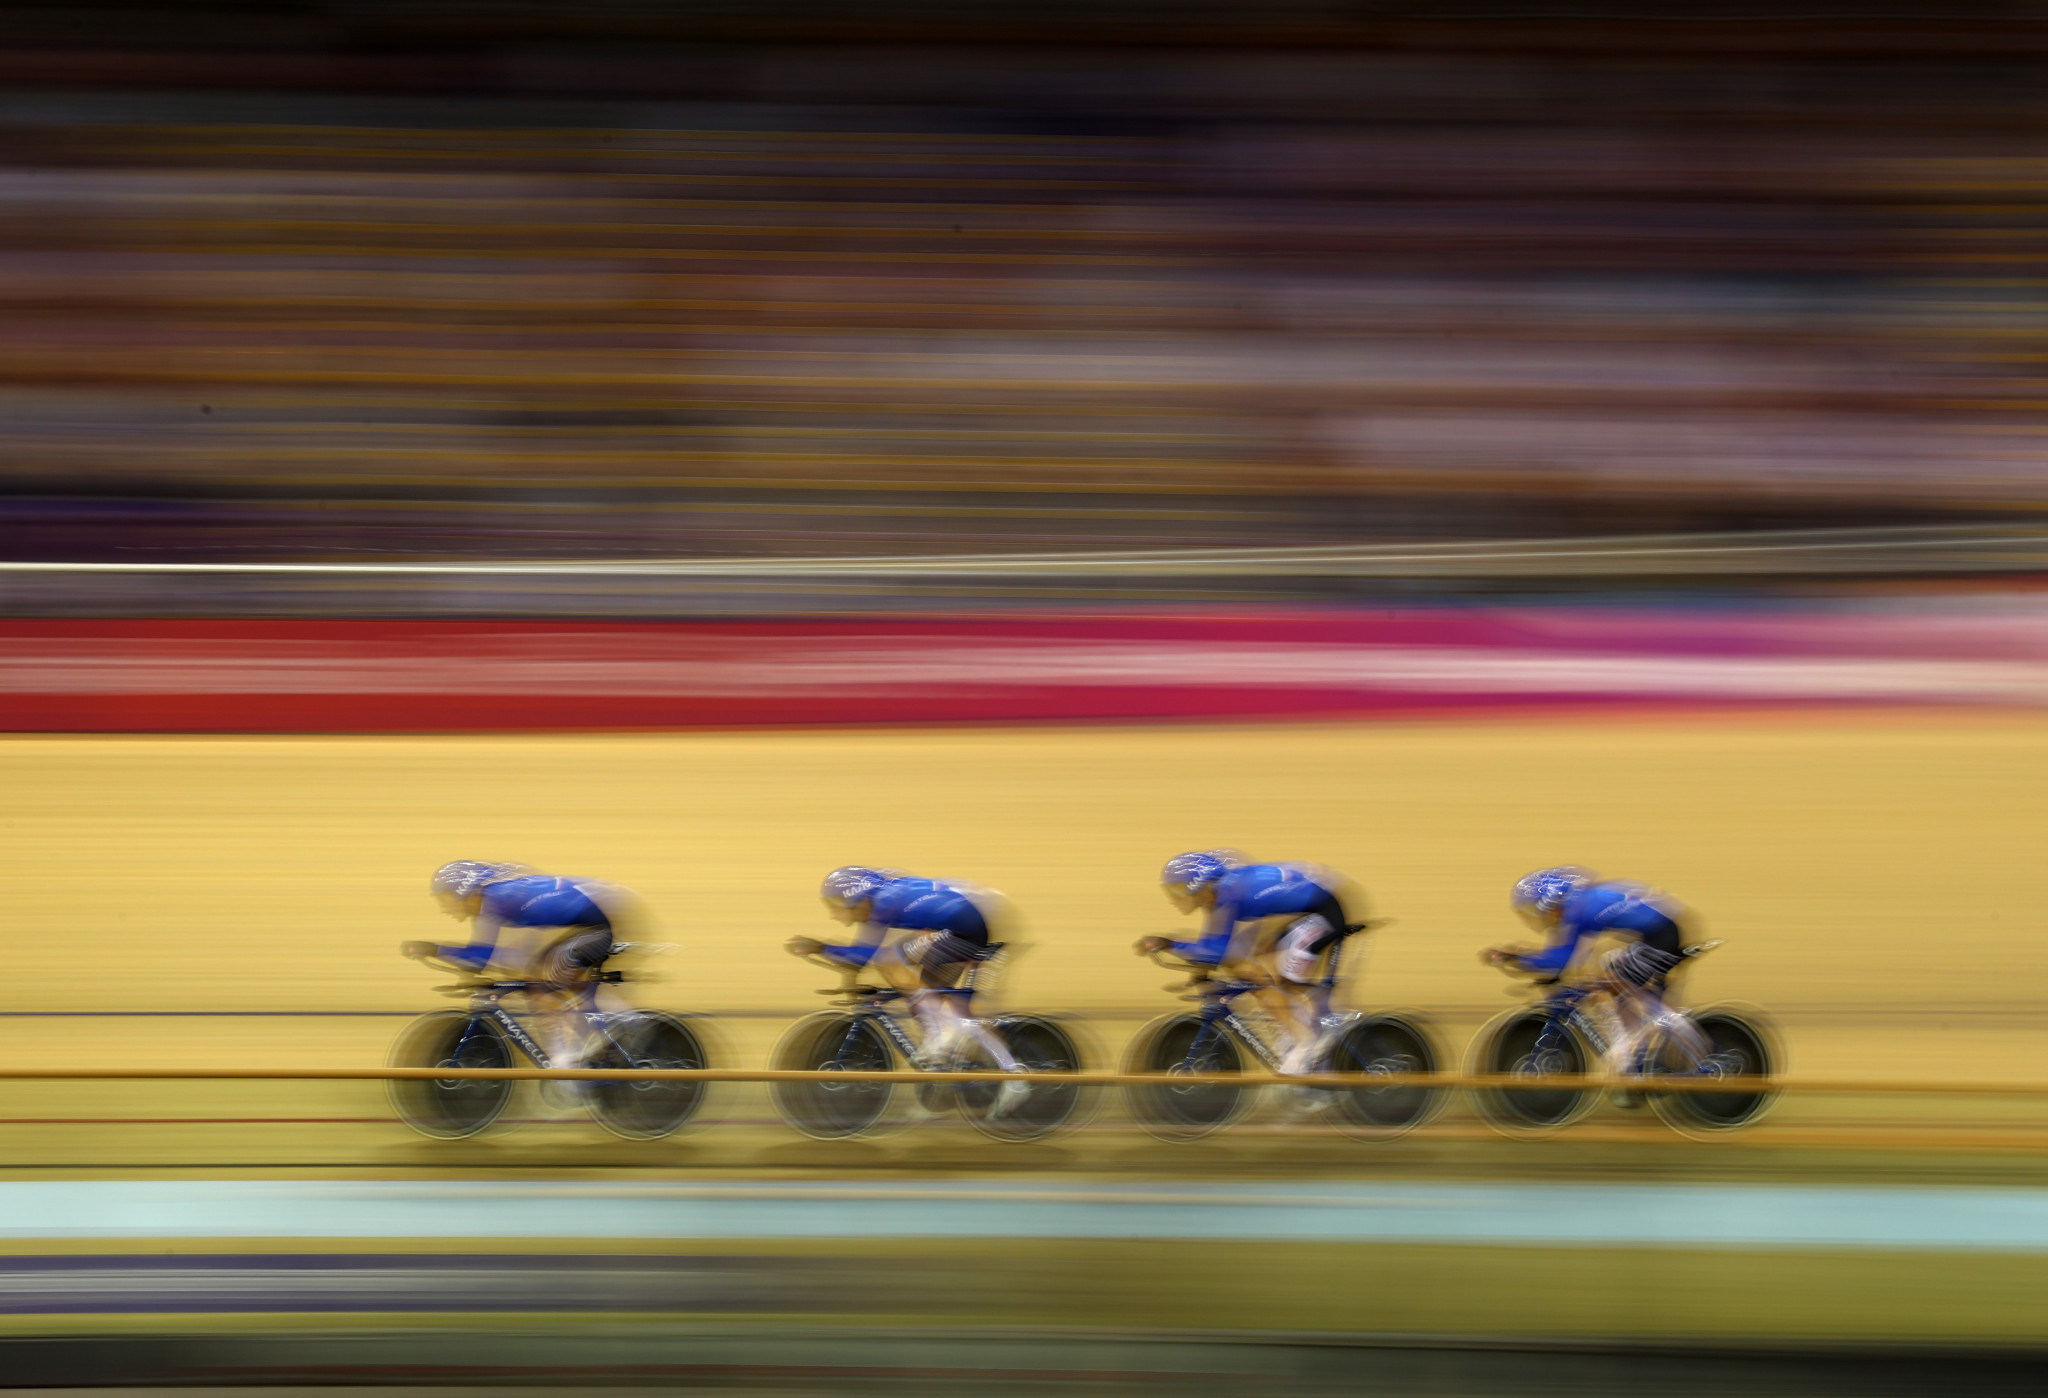 Italy clinched first place in men's qualifying after an impressive ride ©Getty Images